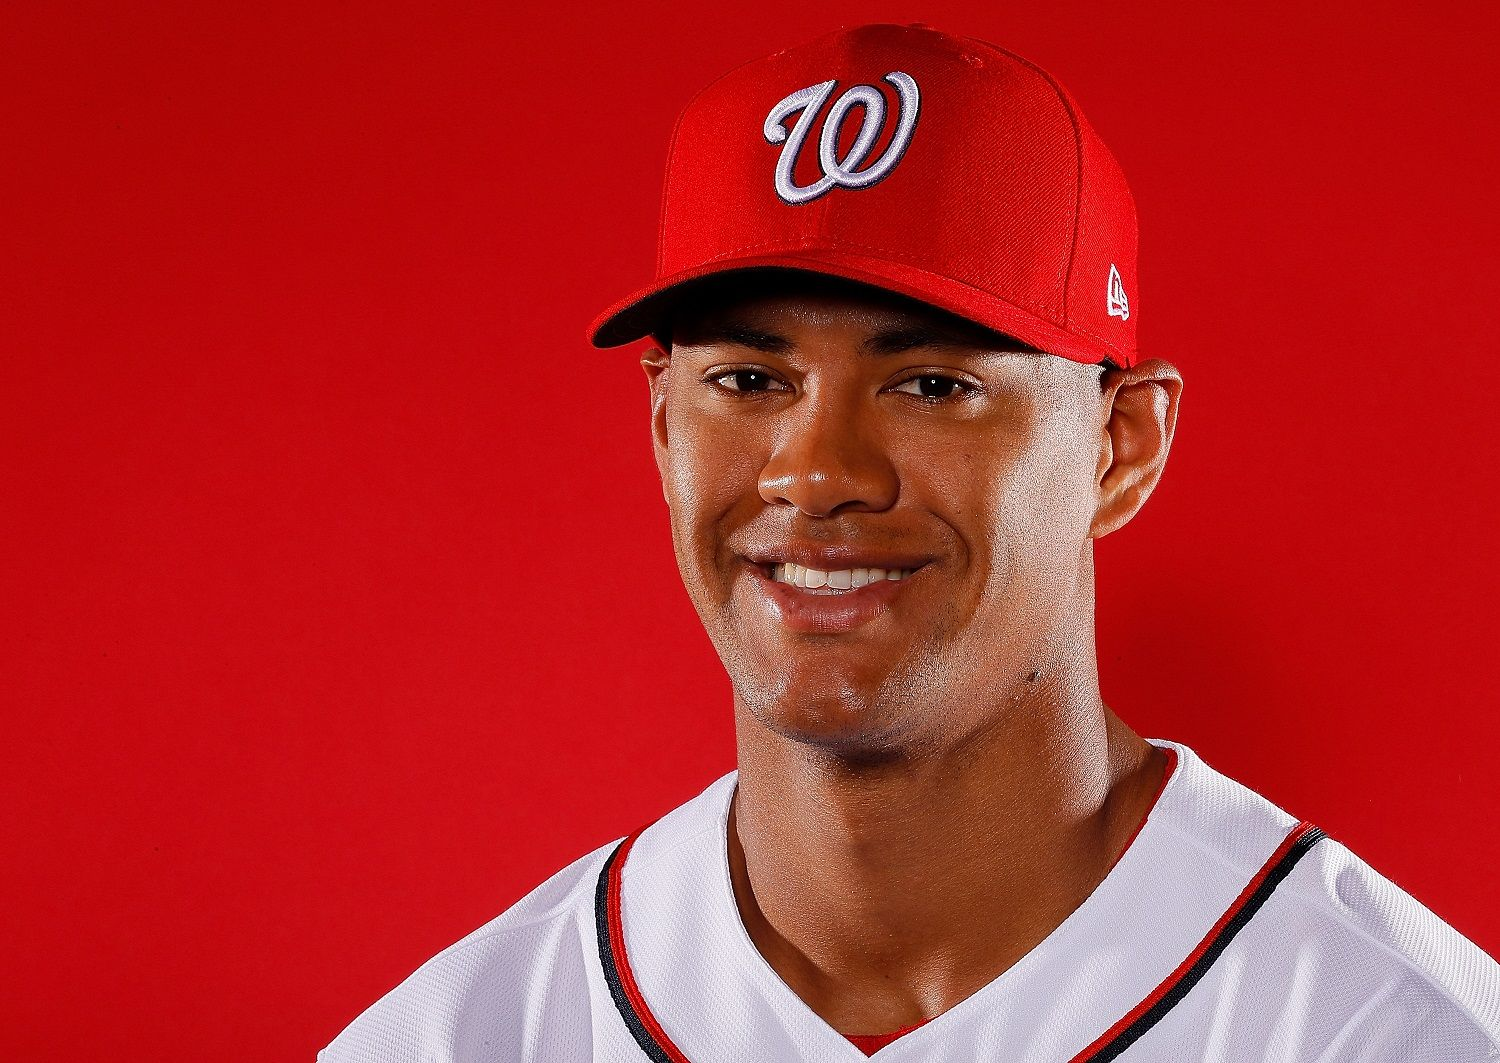 WEST PALM BEACH, FL - FEBRUARY 22:  Joe Ross #41 of the Washington Nationals poses for a photo during photo days at The Ballpark of the Palm Beaches on February 22, 2018 in West Palm Beach, Florida.  (Photo by Kevin C. Cox/Getty Images)